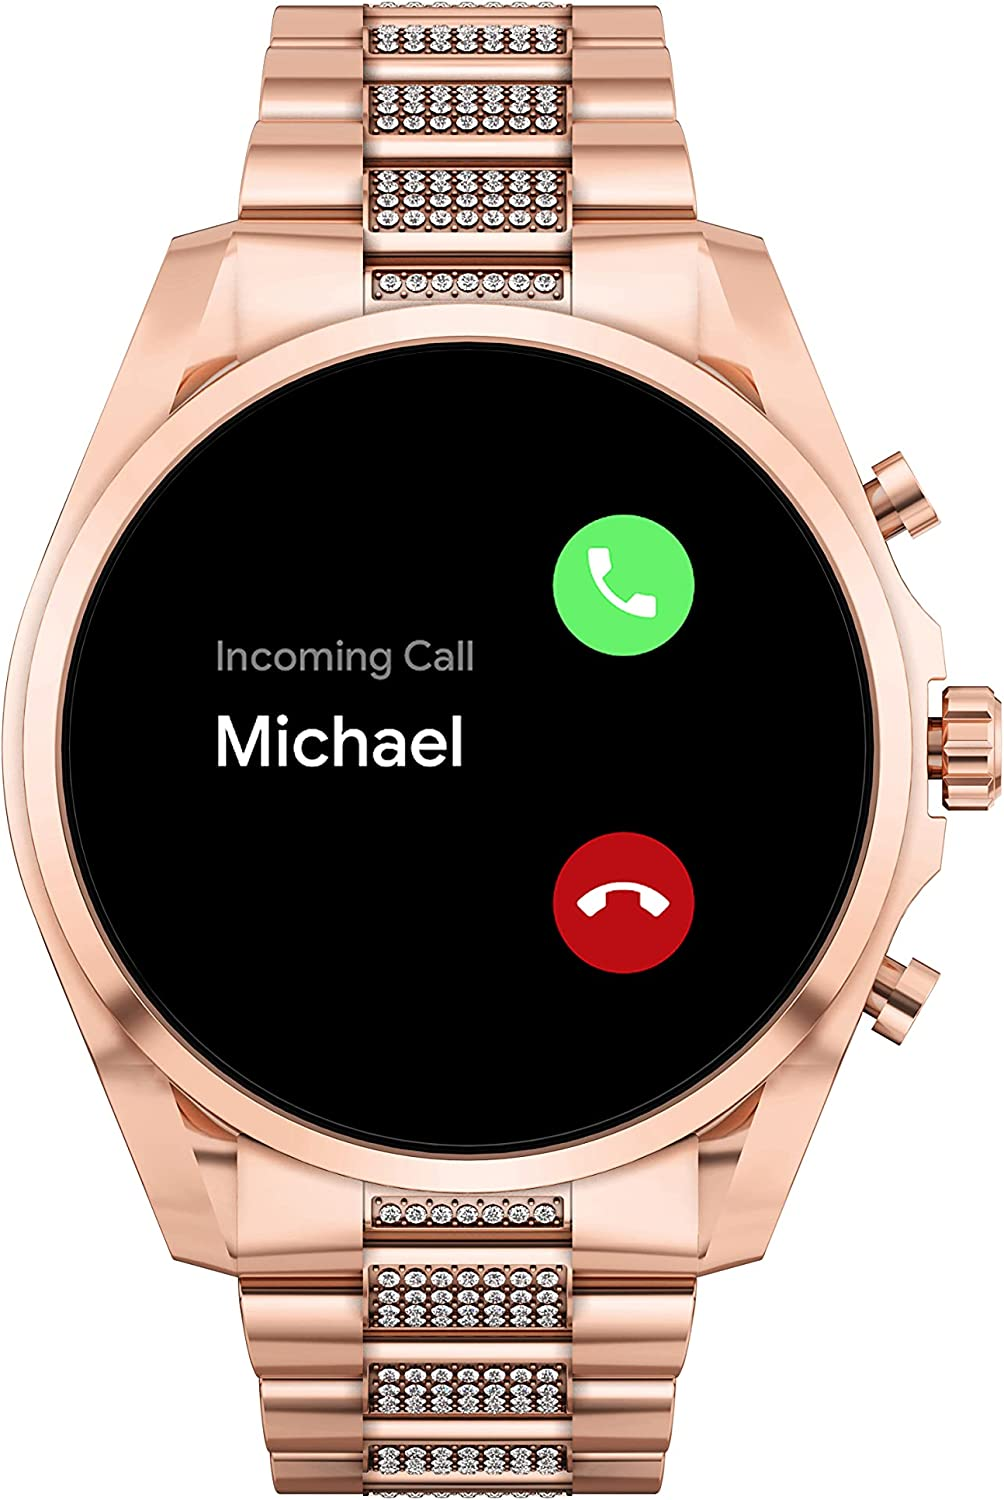 Michael Kors Gen 6 Touchscreen Smartwatch with Speaker, Heart Rate, Blood Oxygen, GPS, Contactless Payments and Smartphone Notifications